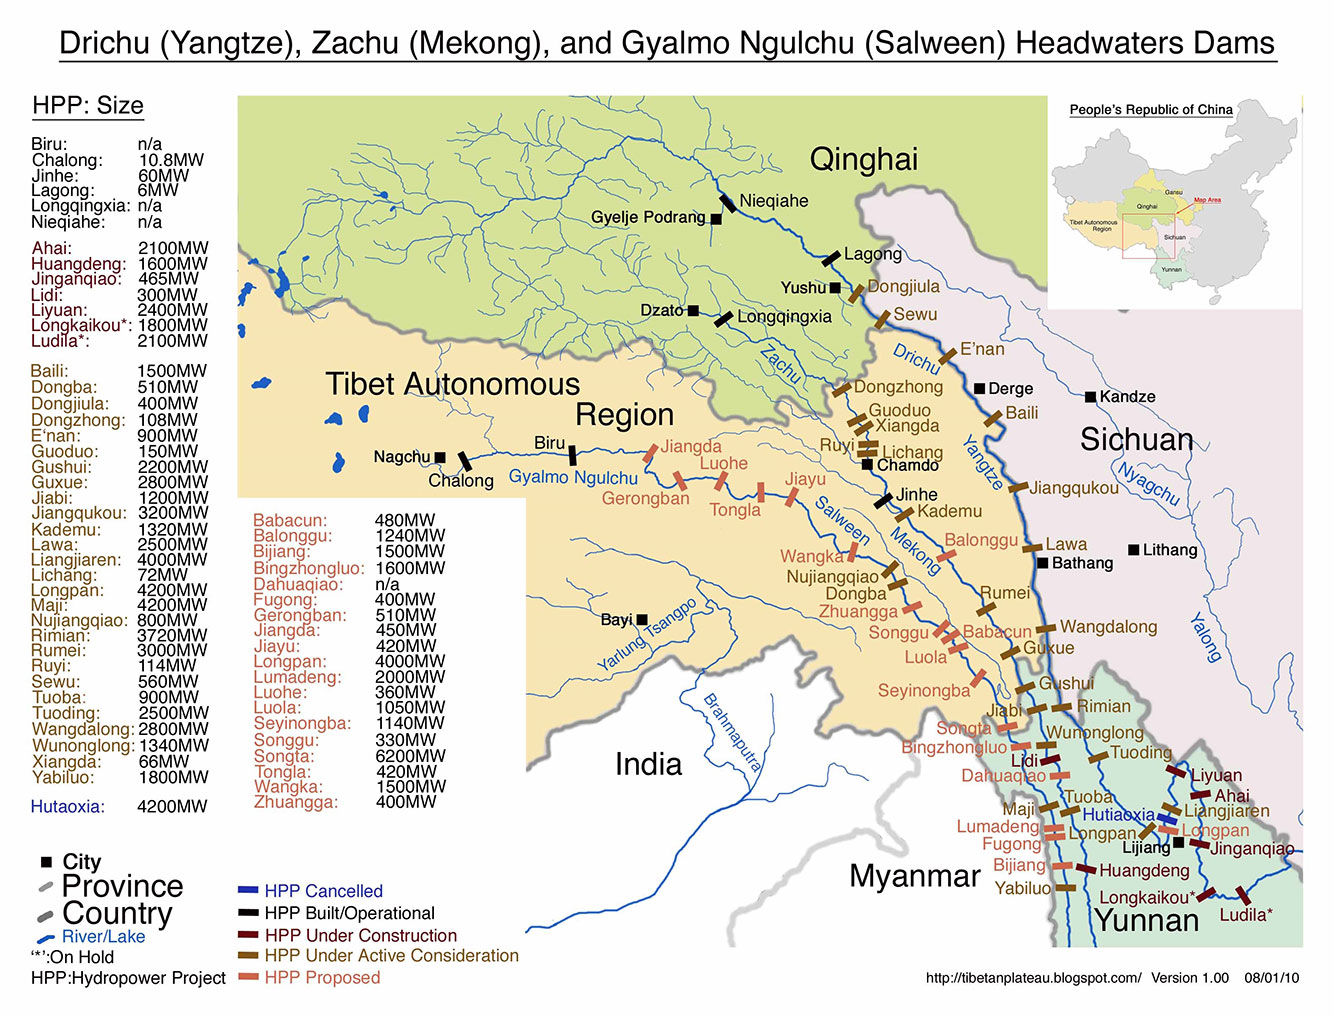 watersheds of the Drichu